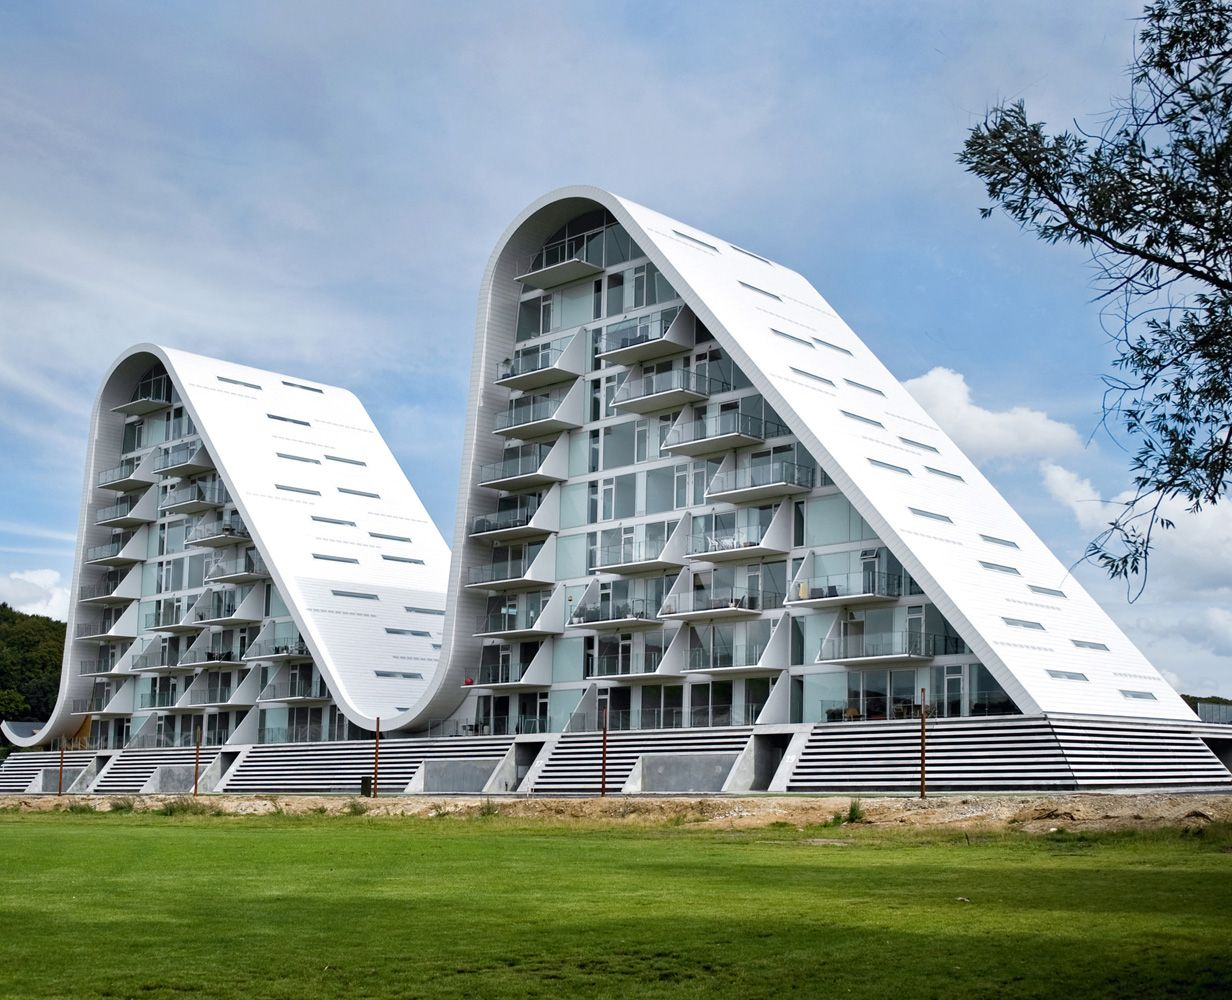 10 Of The World S Coolest Apartment Buildings Co Design Business